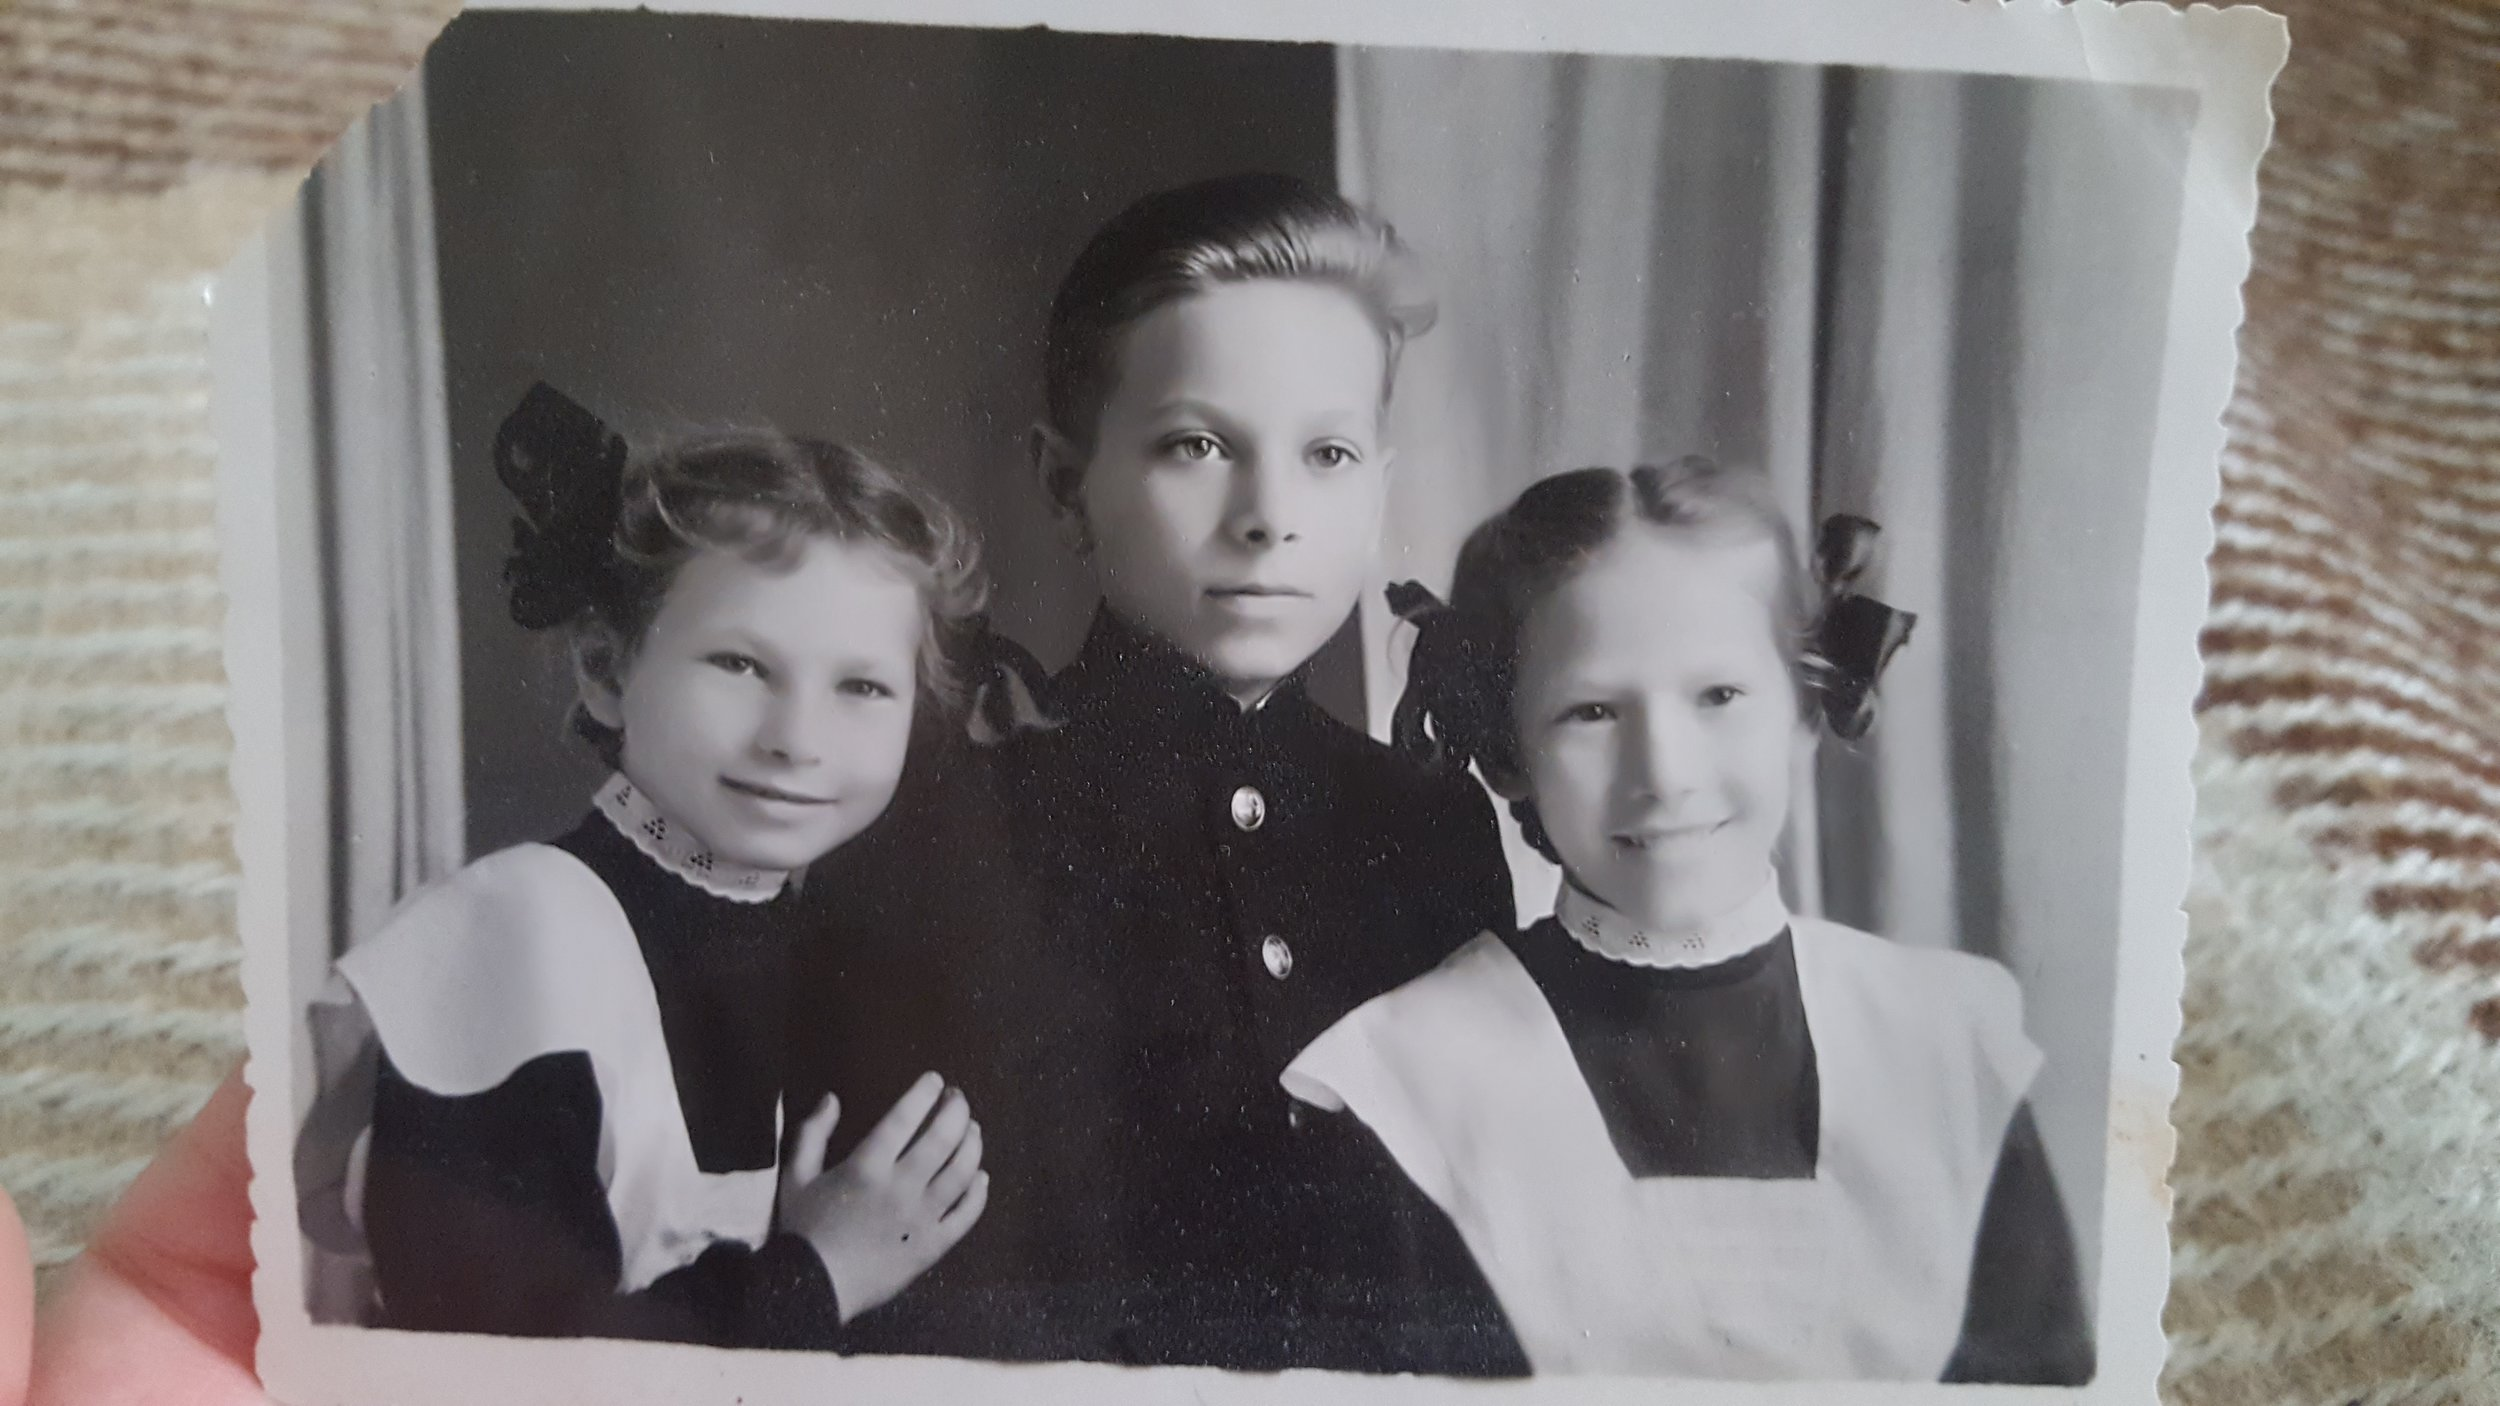 Rimma, Alek (Arnold), and Elya (Elvira) - the three siblings. Arnold is my mom's dad, Elya became my Babushka who helped us move to America, and Rimma on the left is who welcomed us to her home in Kiev. The apartment originally belonged to their parents when they first moved to Kiev from Chita, Siberia.